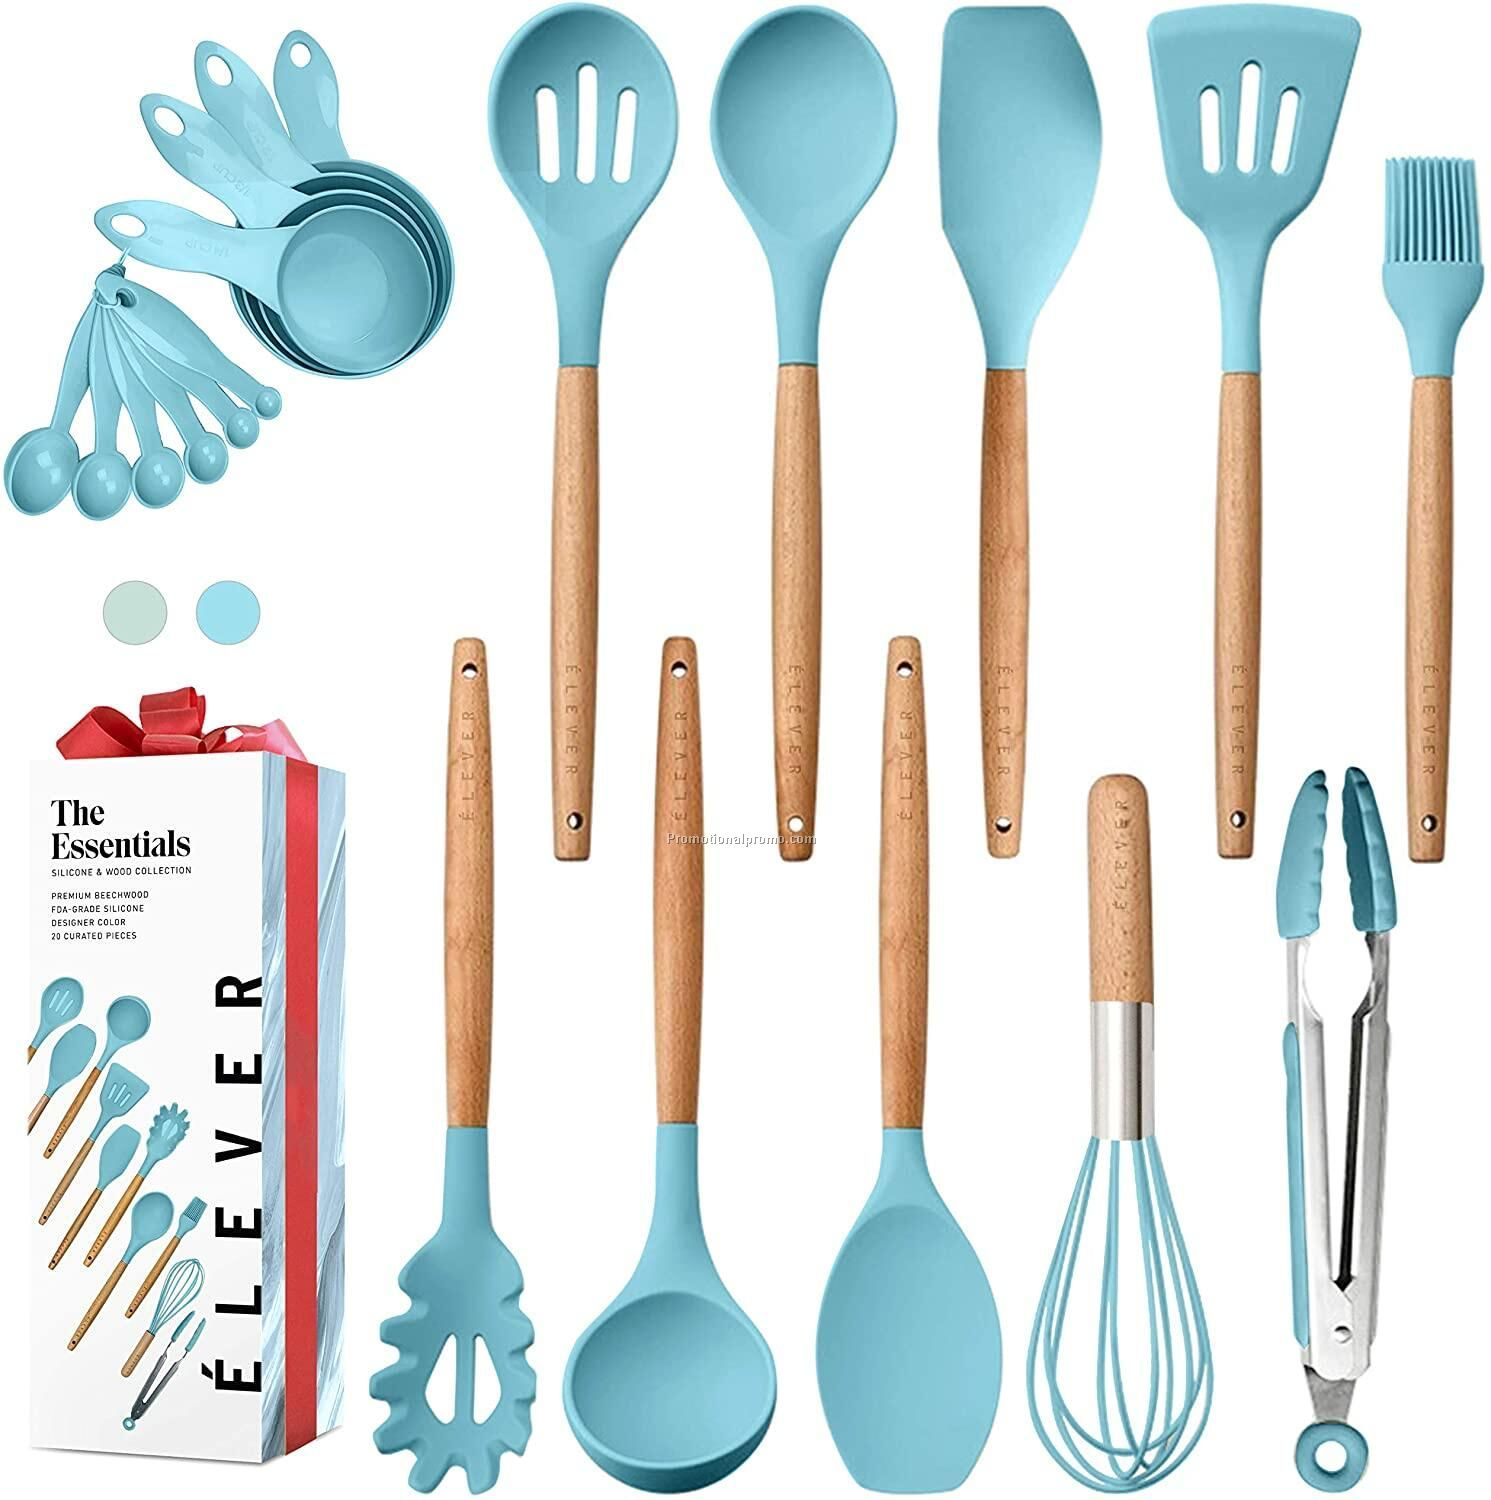 Kitchen Cooking Tools Silicone Utensils with Wooden Handle Multifunctional Kitchen Accessories